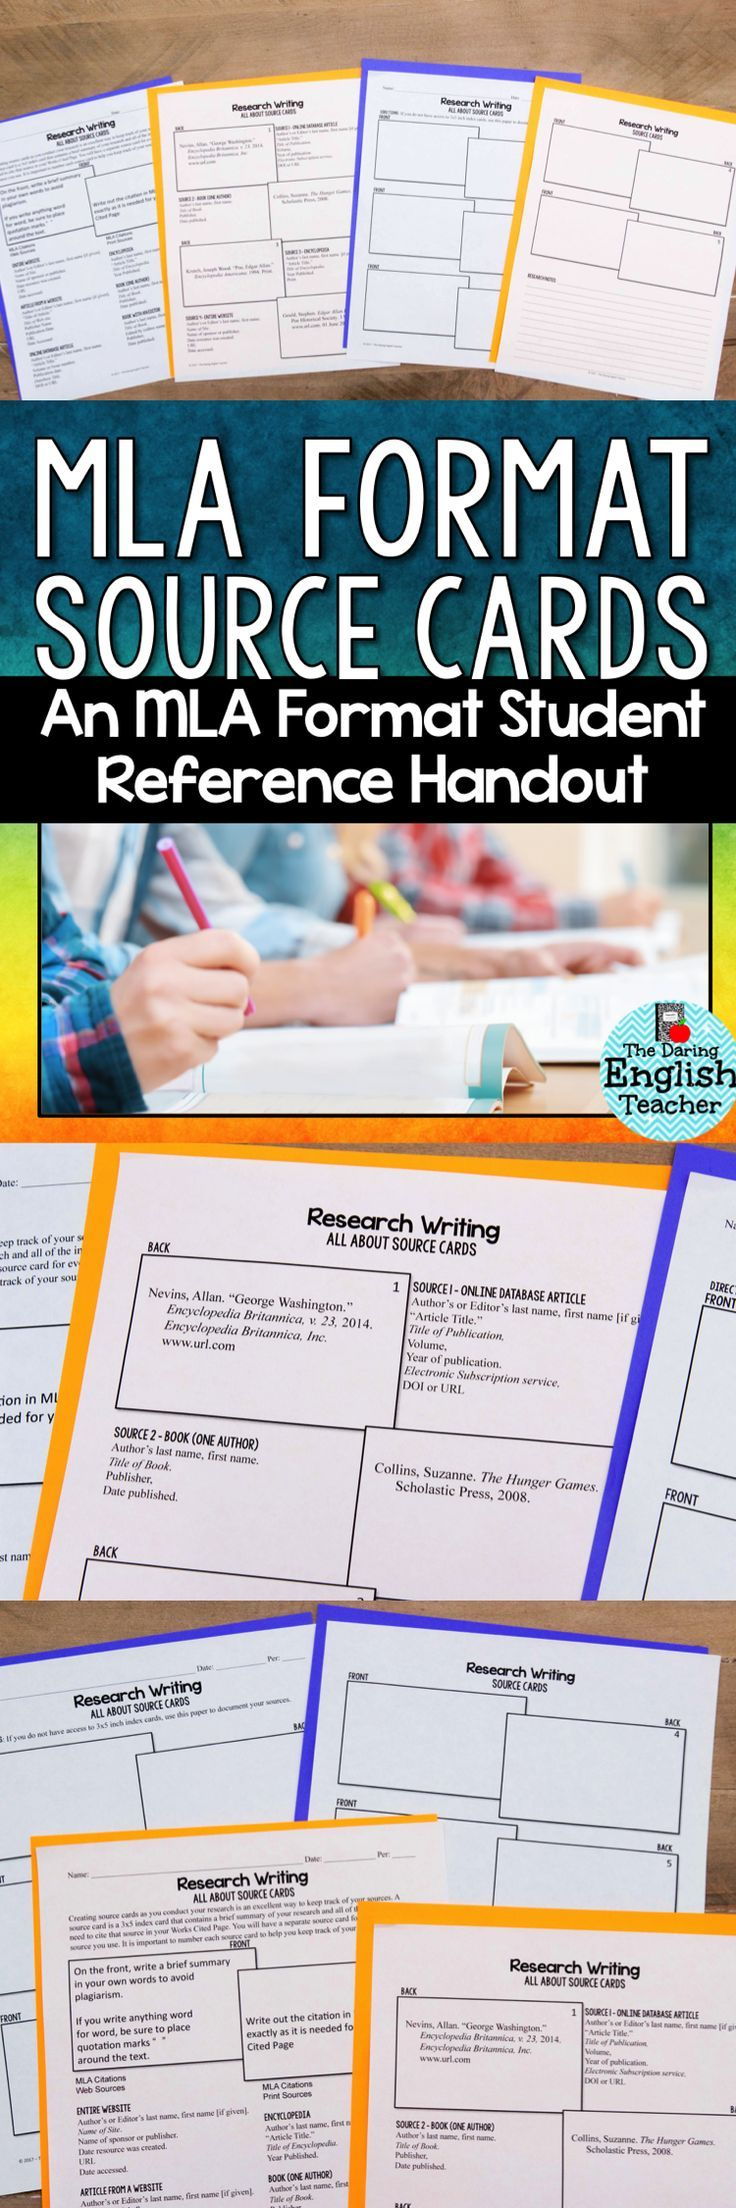 8th Edition MLA Format source cards. This resource includes 4 pages: a double-sided student reference guide and a double-sided graphic organizer. Ideal for the secondary ELA classroom. Research writing. MLA format.